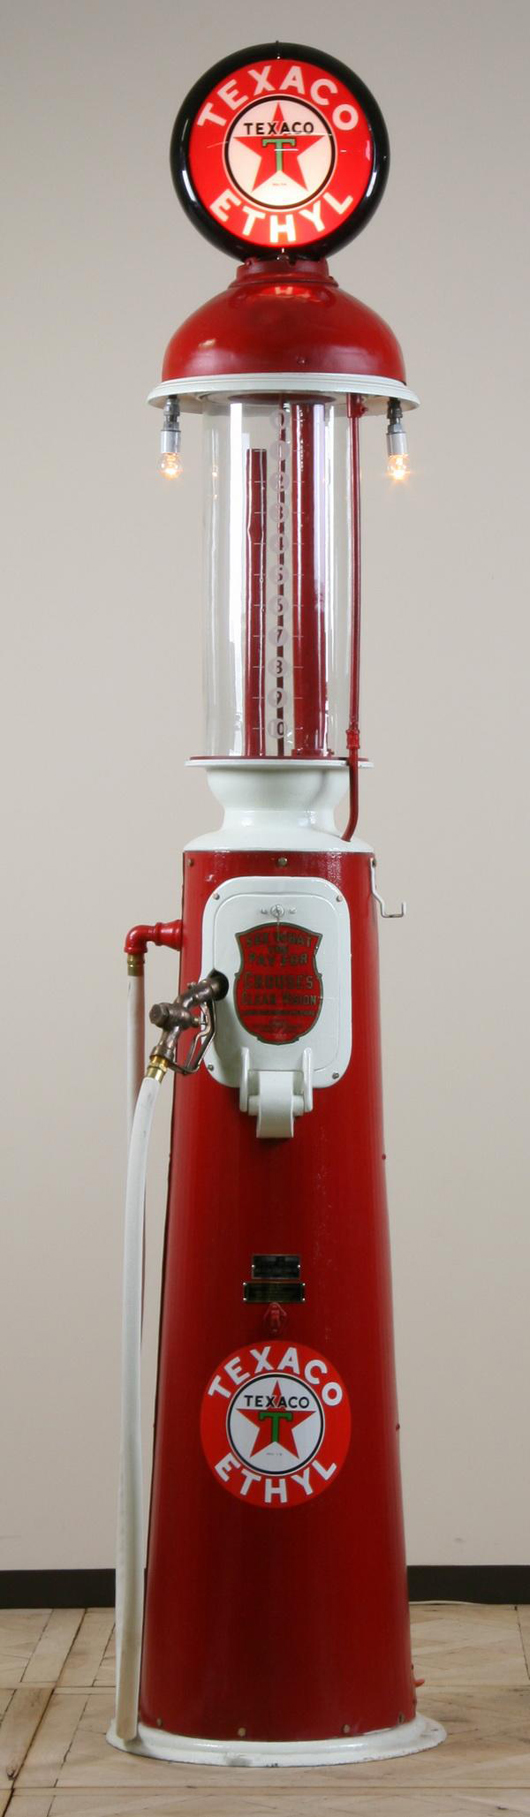 Gas pump maker marked 'Crouse's Clear Vision Liquid Dispensing Measure, Model 201' by Clear Vision Pump Co. Wichita, Kan., with etched glass 10-gallon gas cylinder, est. $4,000-$8,000. Image courtesy of Great Gatsby's Auction Gallery.